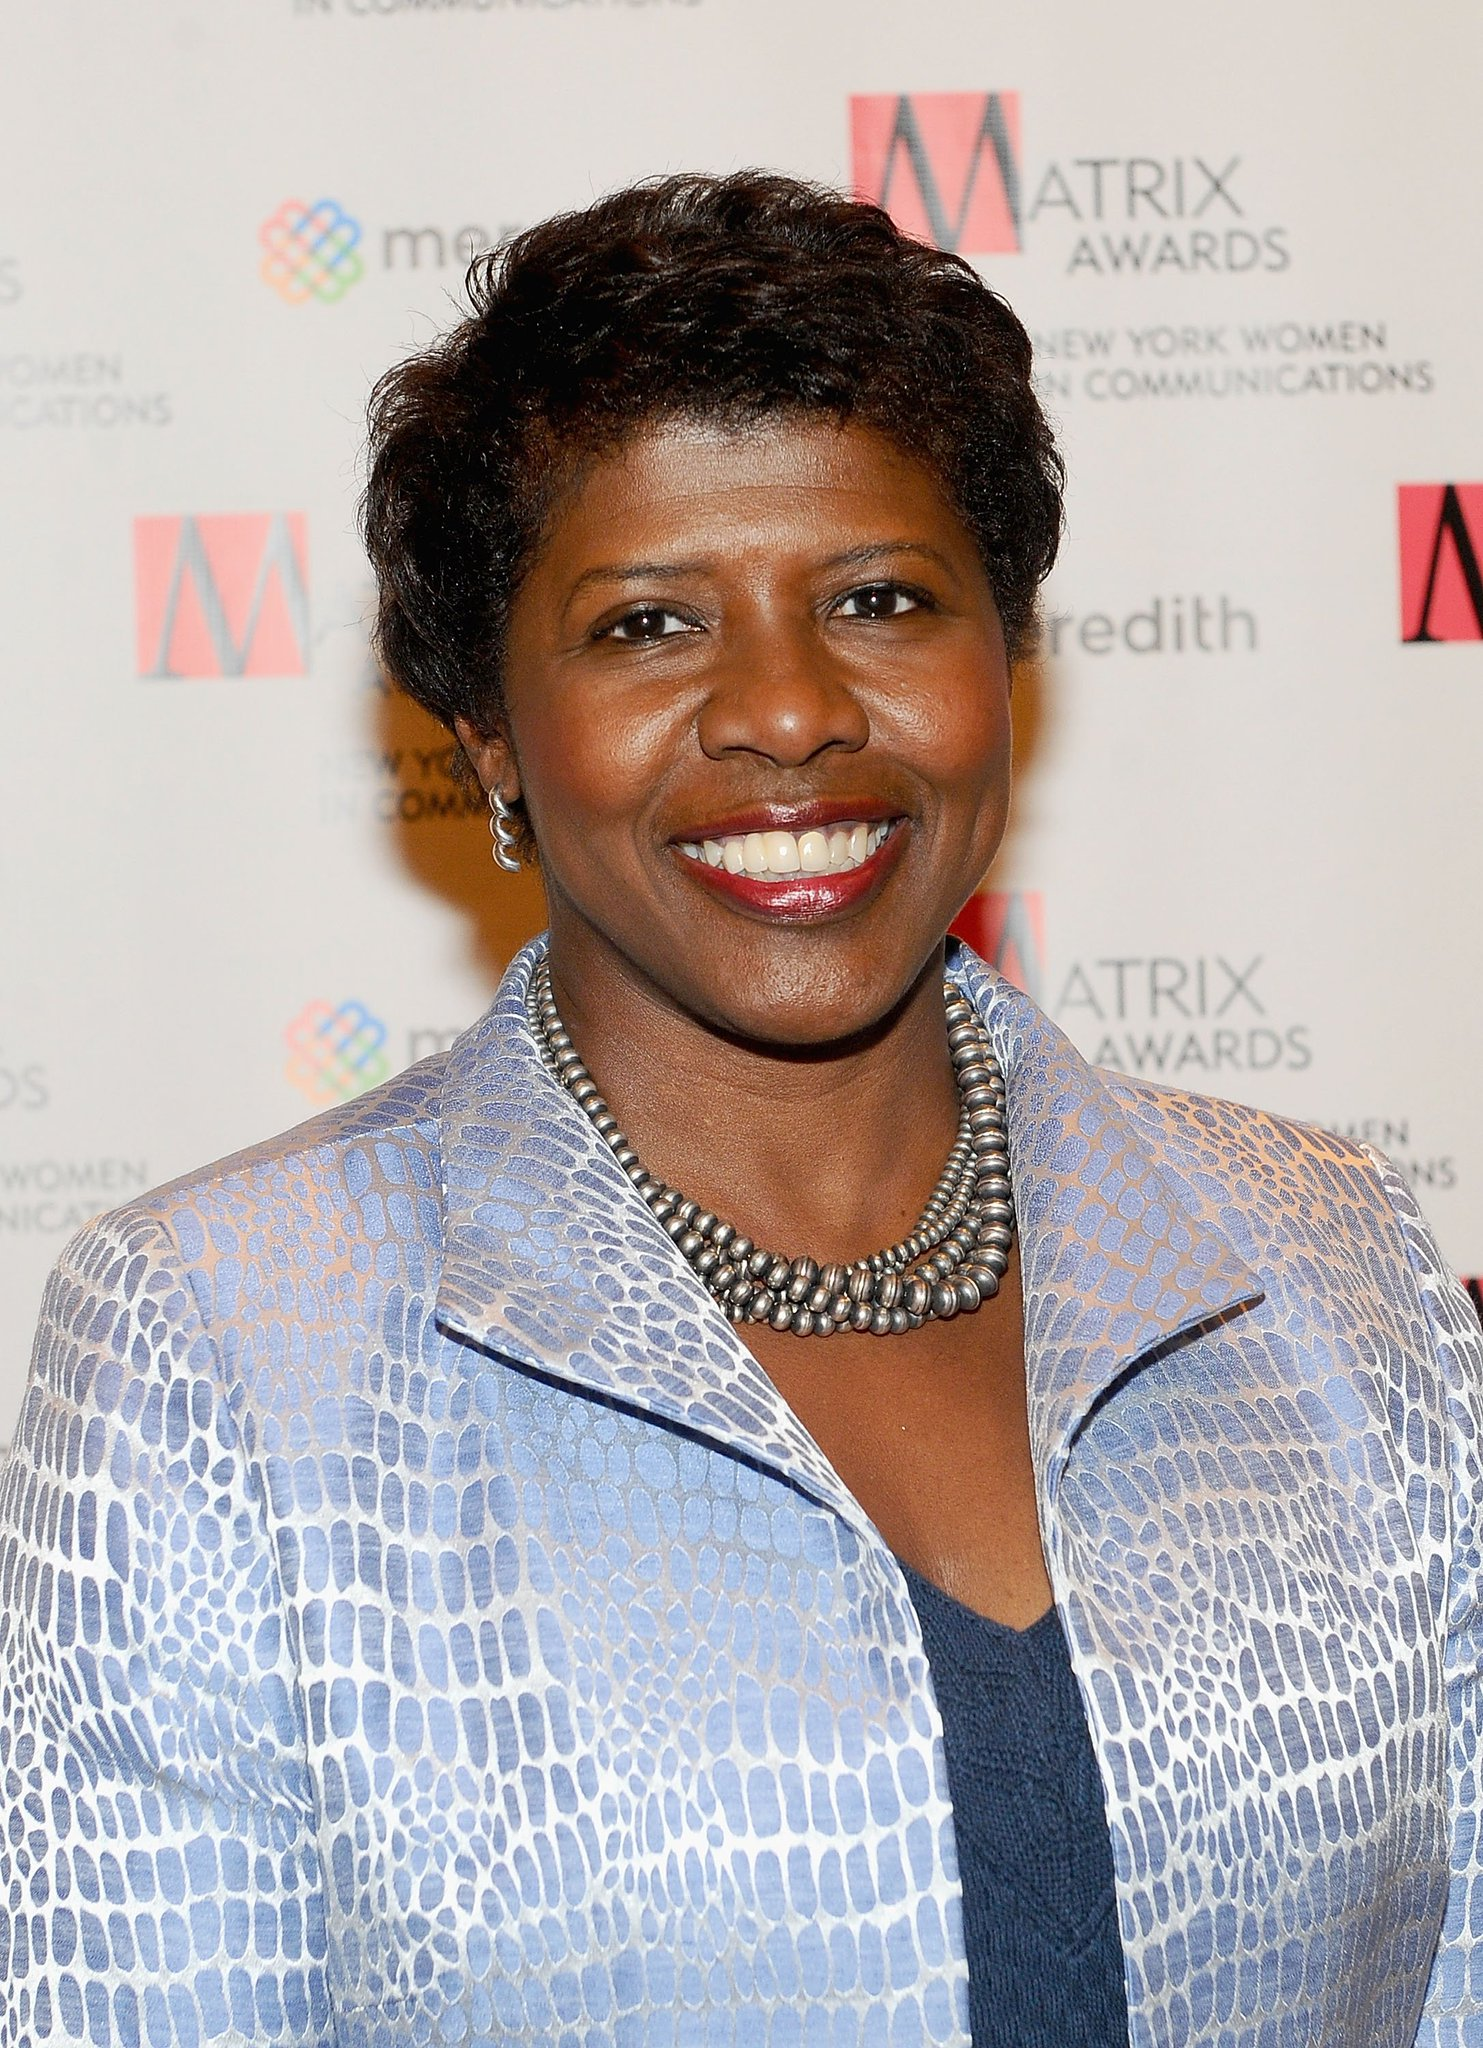 College to name school for late journalist Gwen Ifill, who died one year ago today https://t.co/gDCSWT3eO7 https://t.co/FzIOhcpLCl